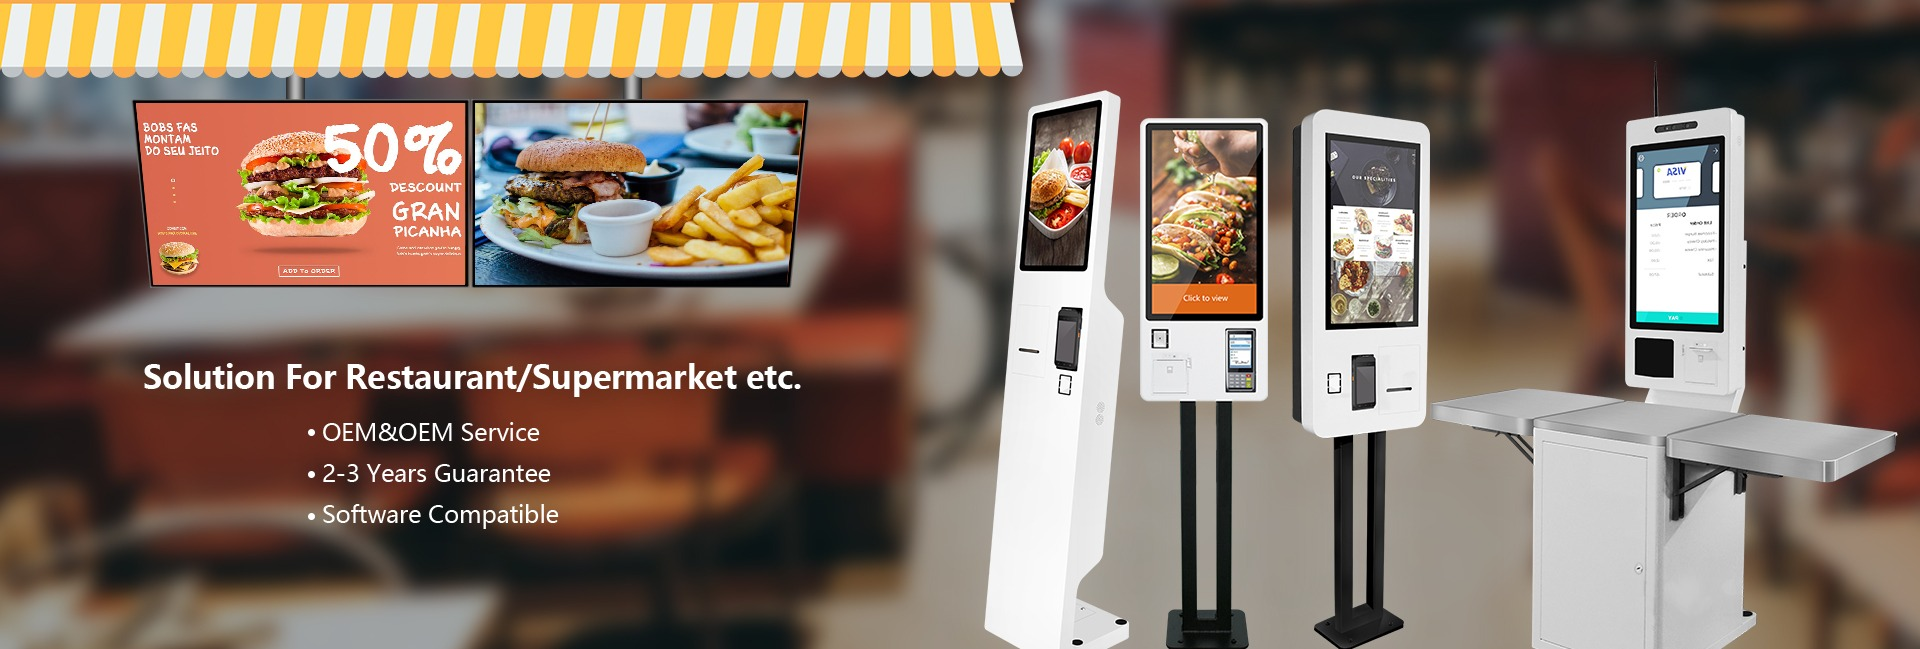 epos touchscreen Digital Screens and self order kiosk